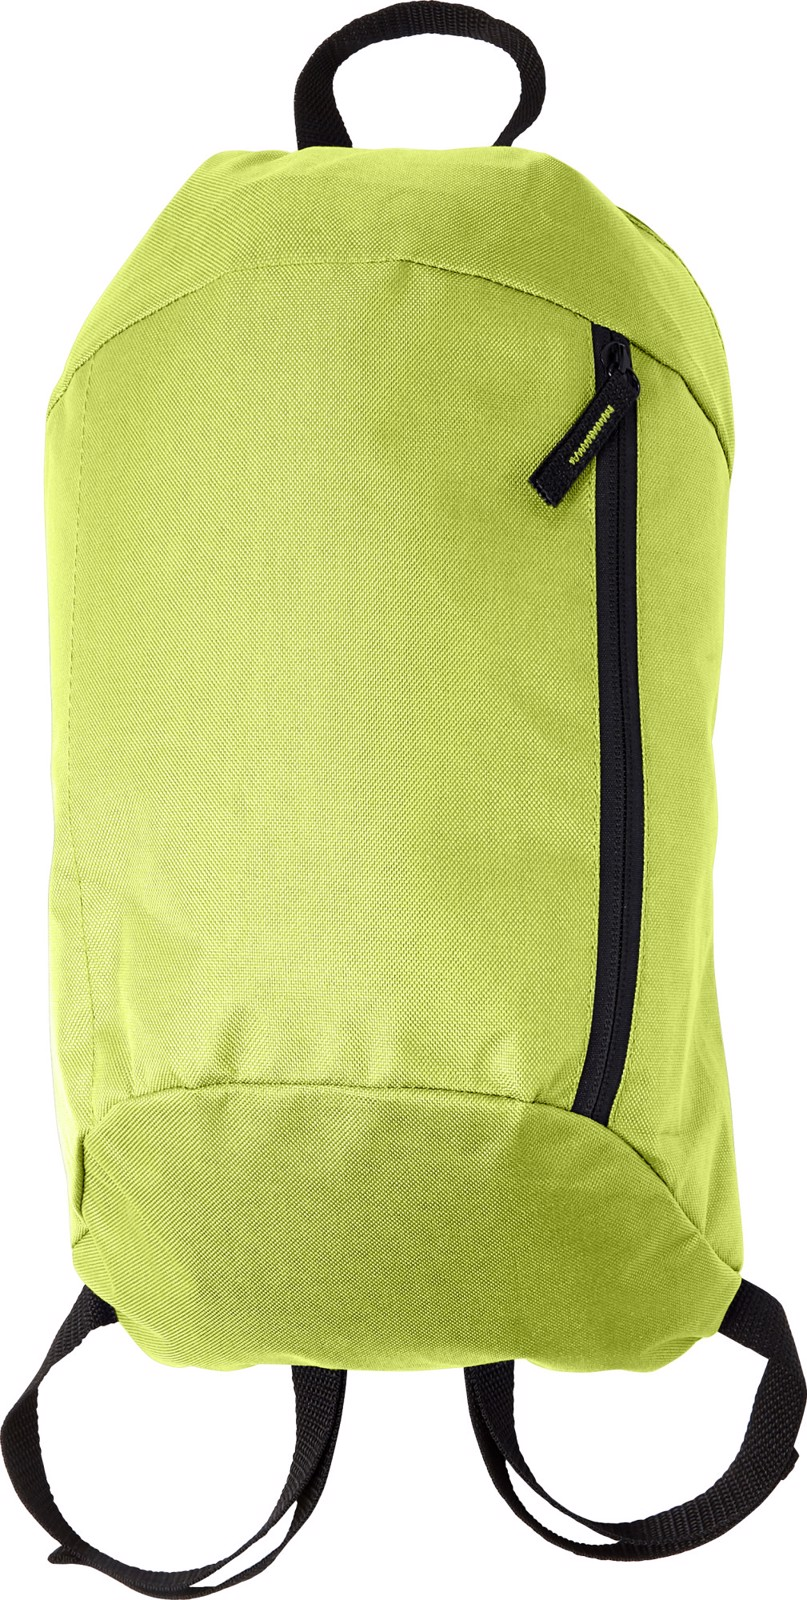 Polyester (210D) backpack - Lime